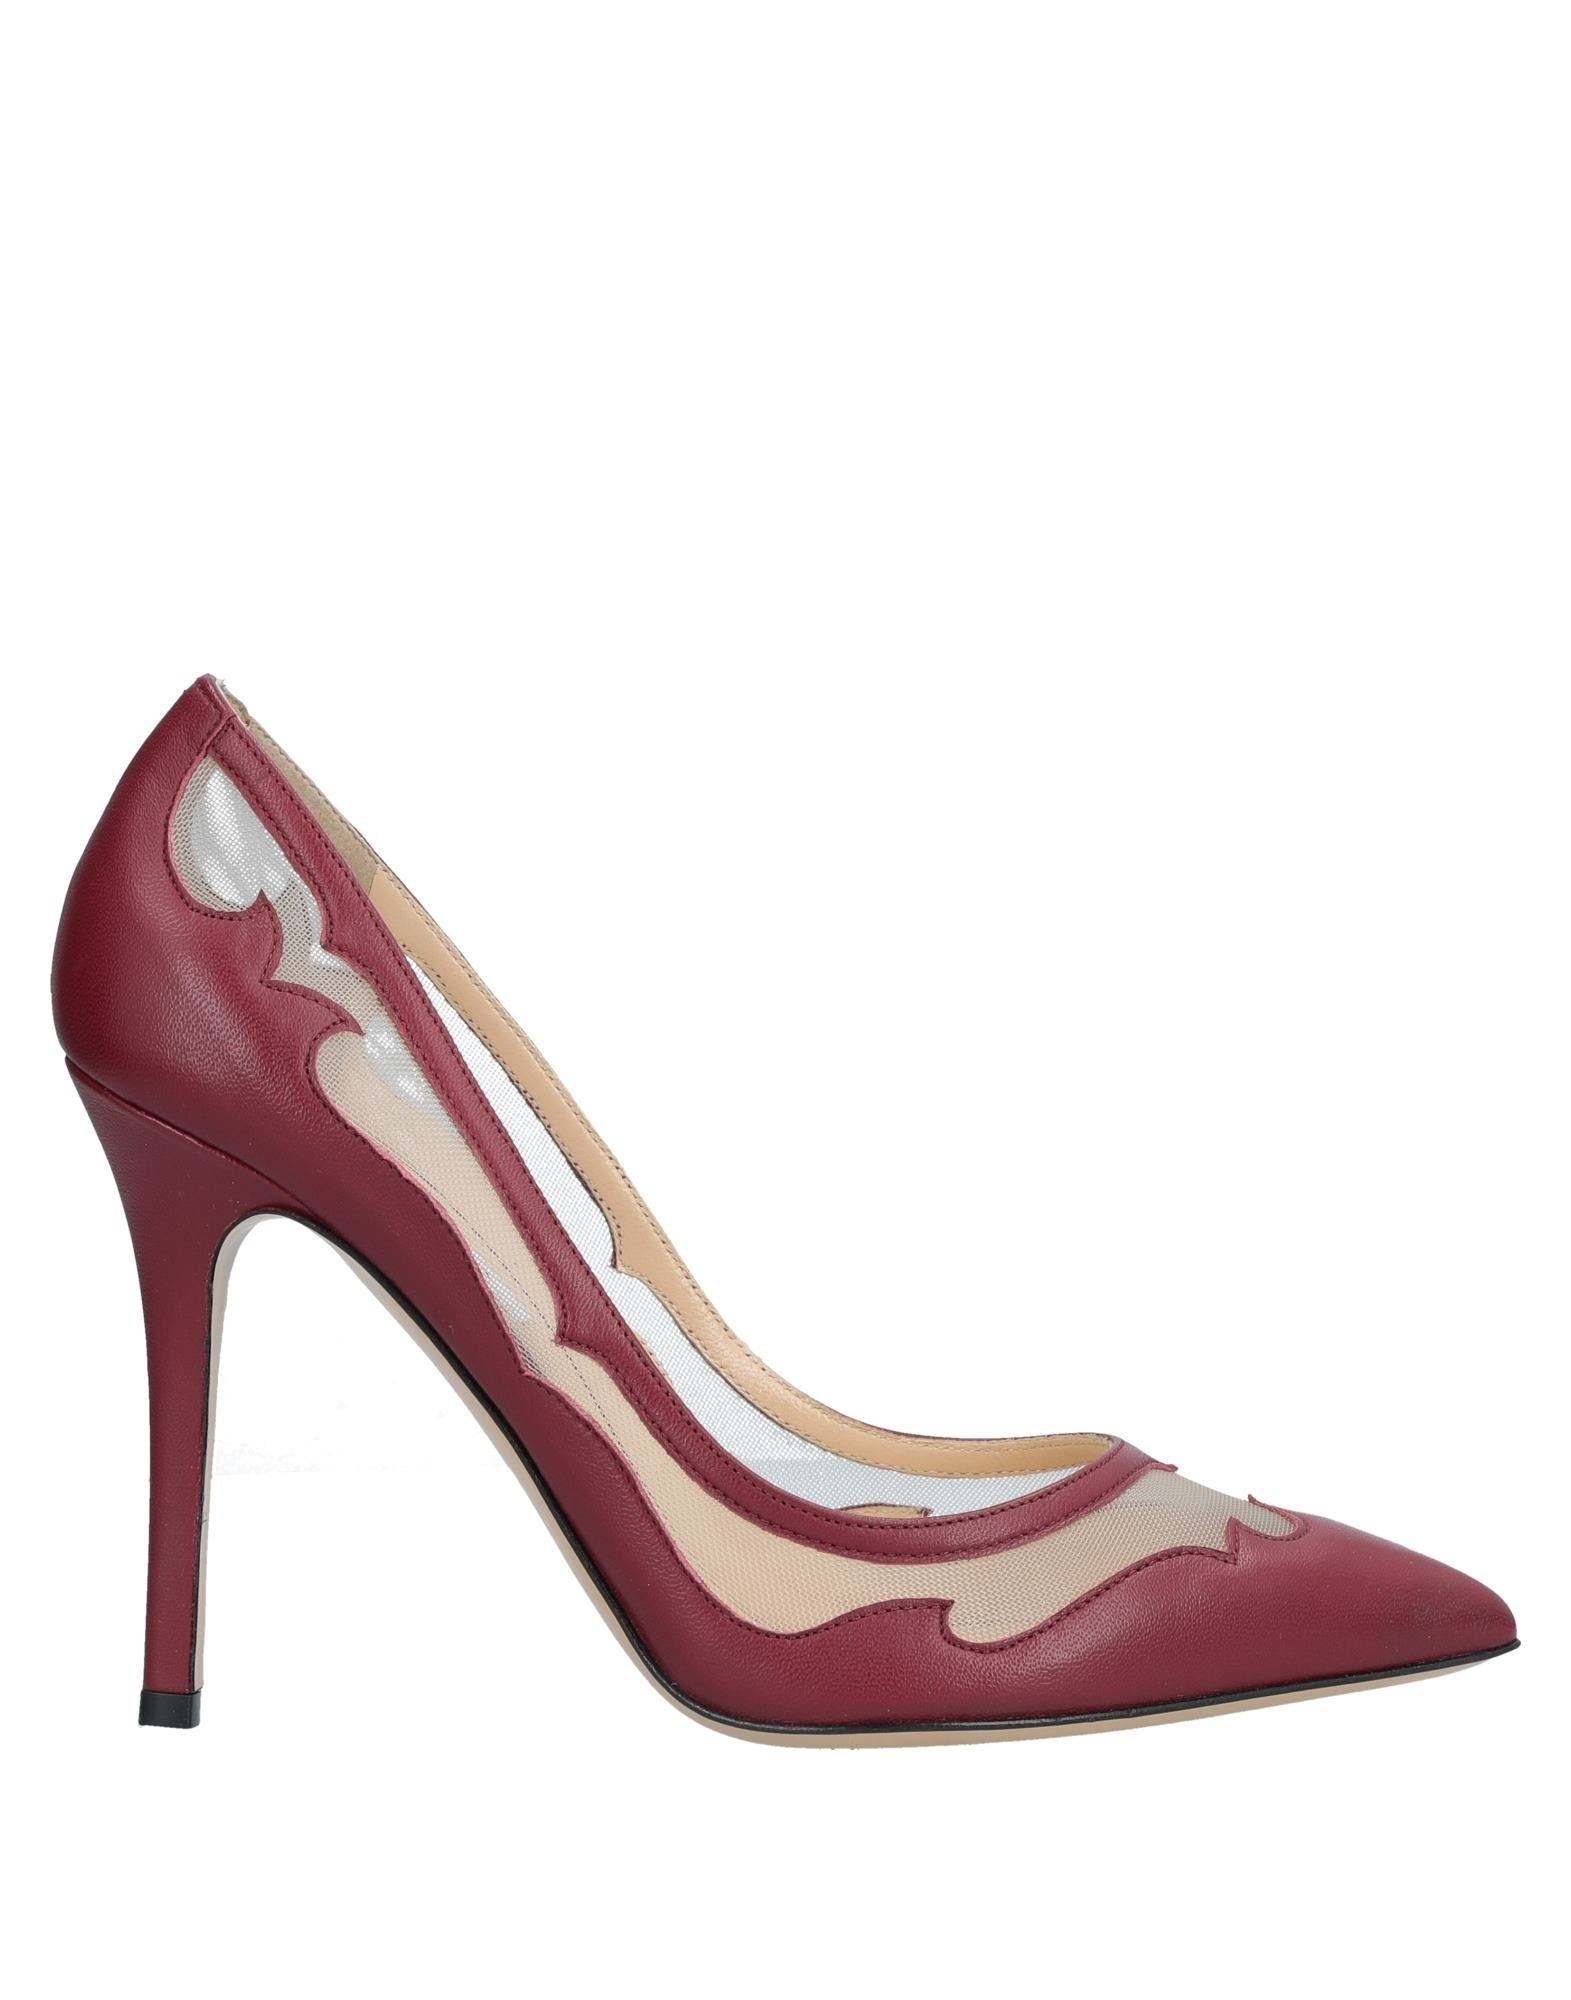 SEMILLA Pump in Maroon